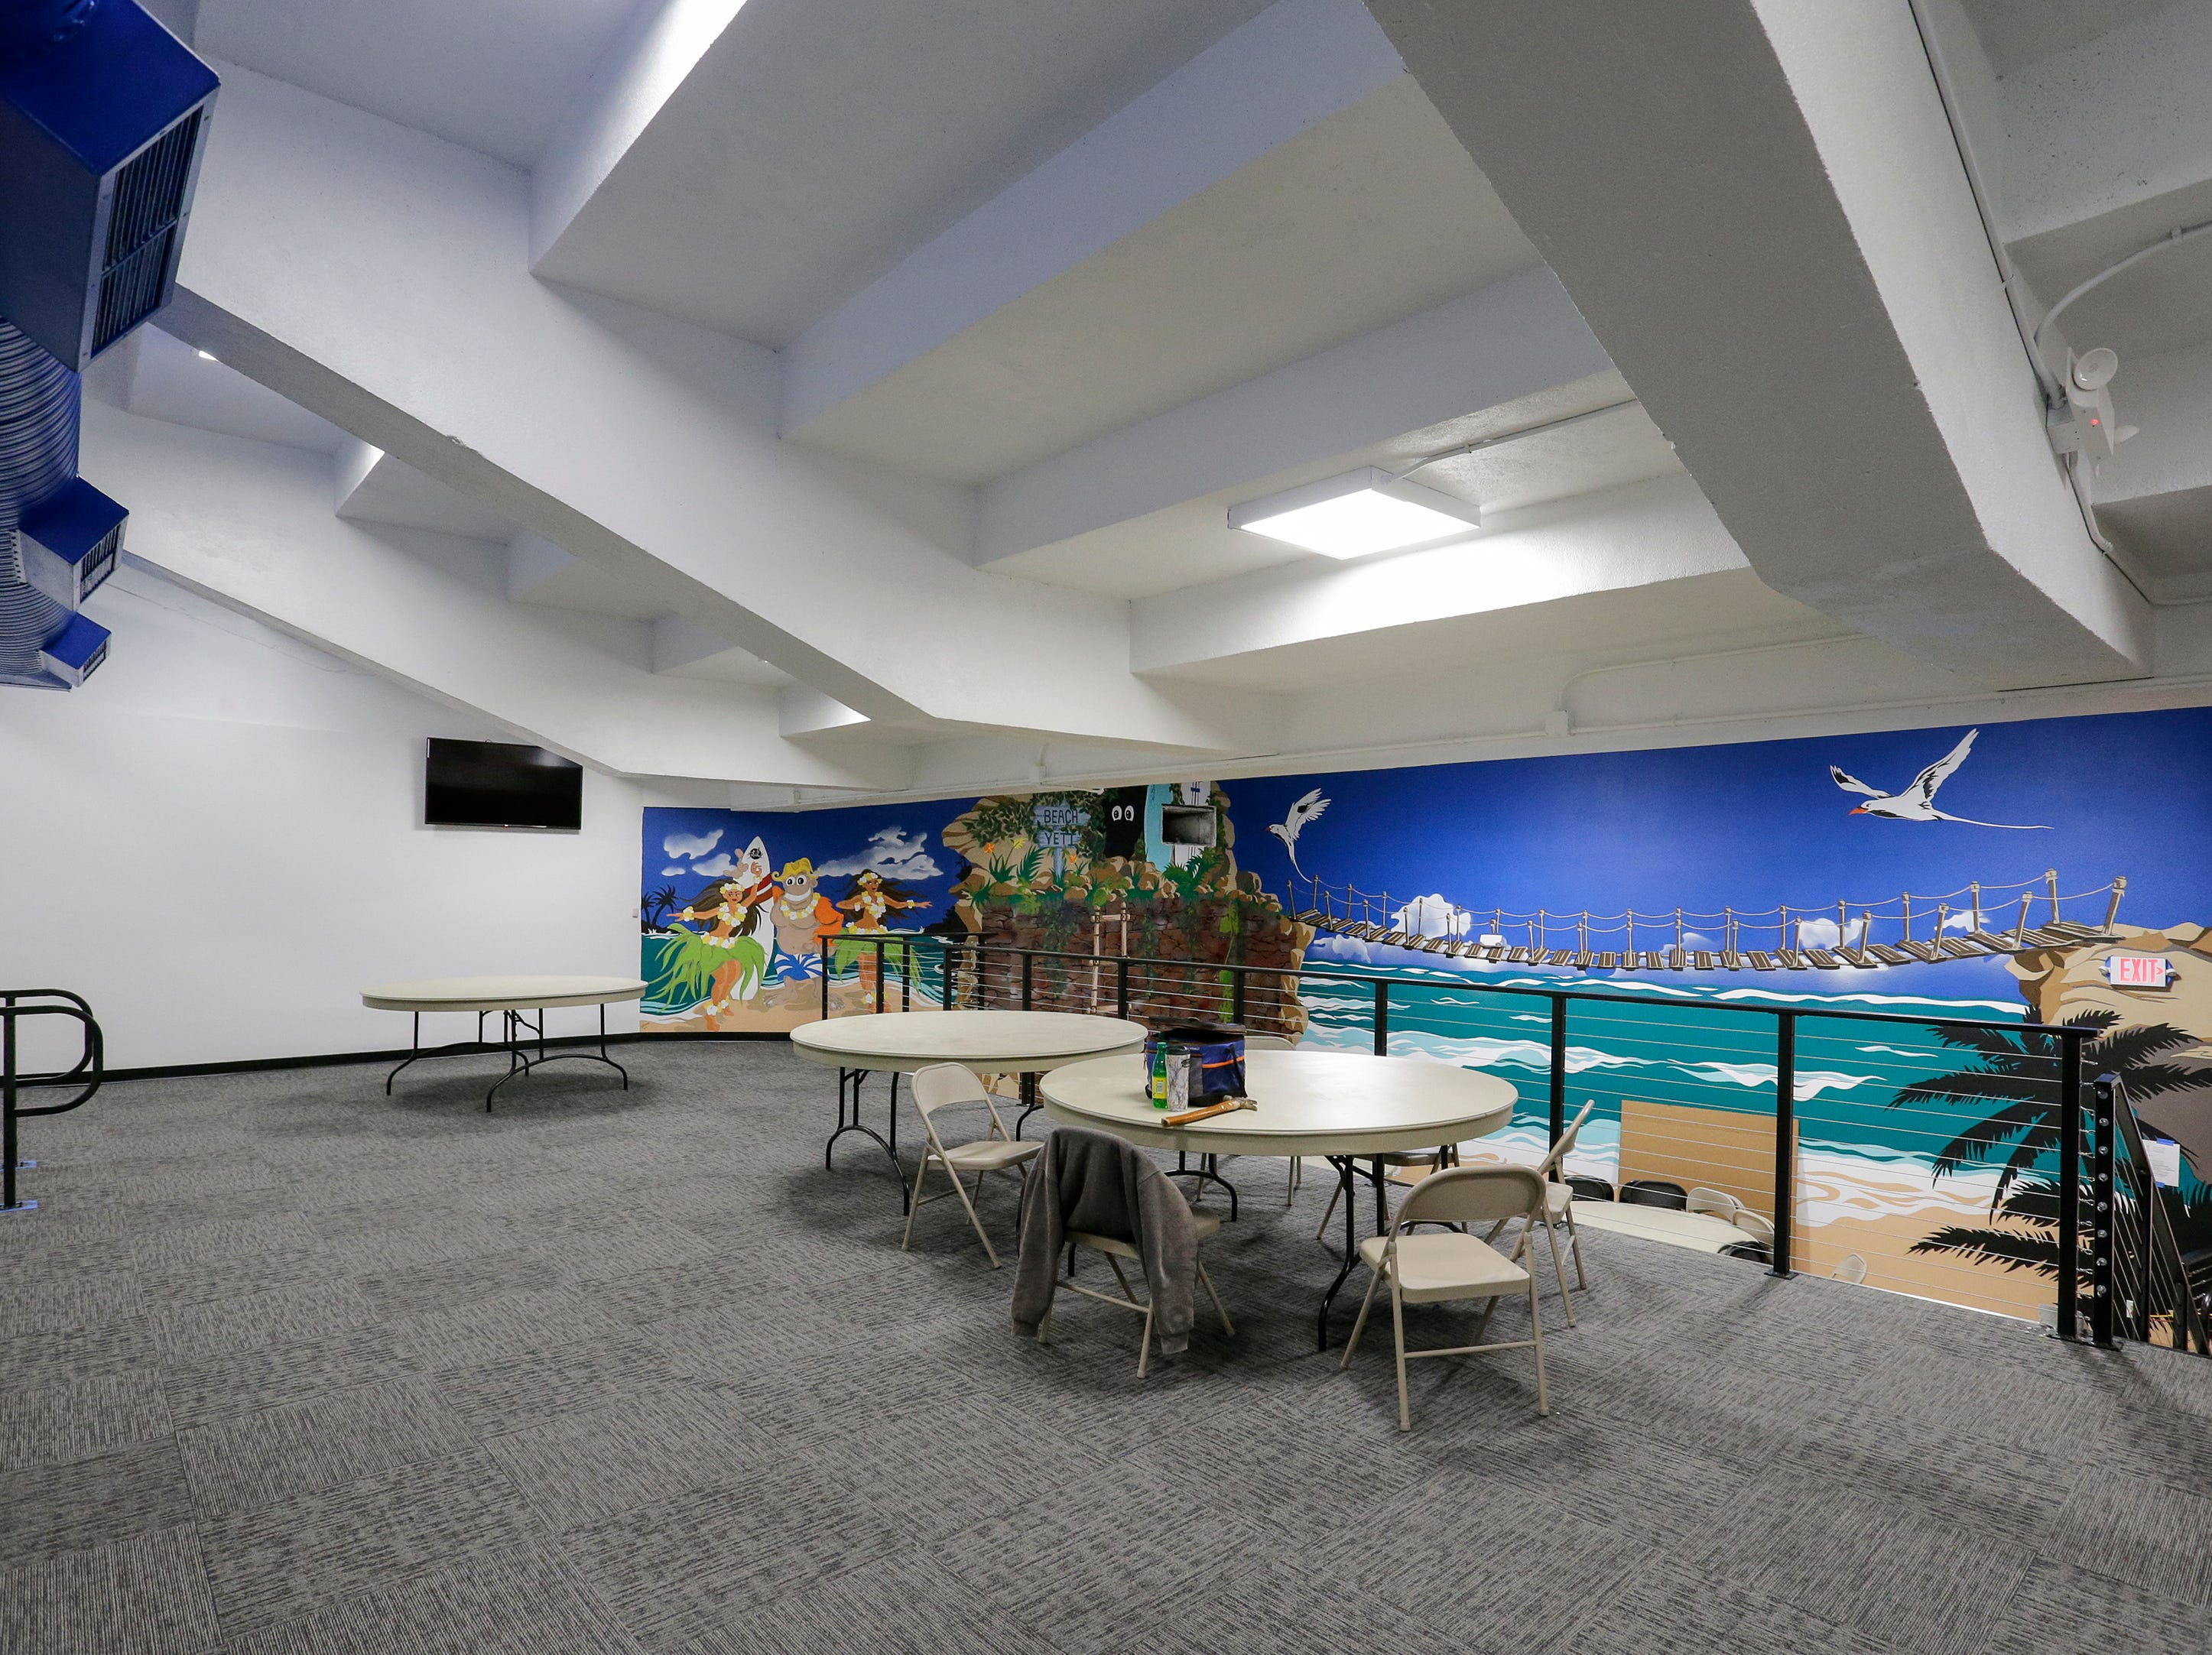 A party room at Strand Adventures Wednesday, May 1, 2019, in Manitowoc, Wis. Joshua Clark/USA TODAY NETWORK-Wisconsin